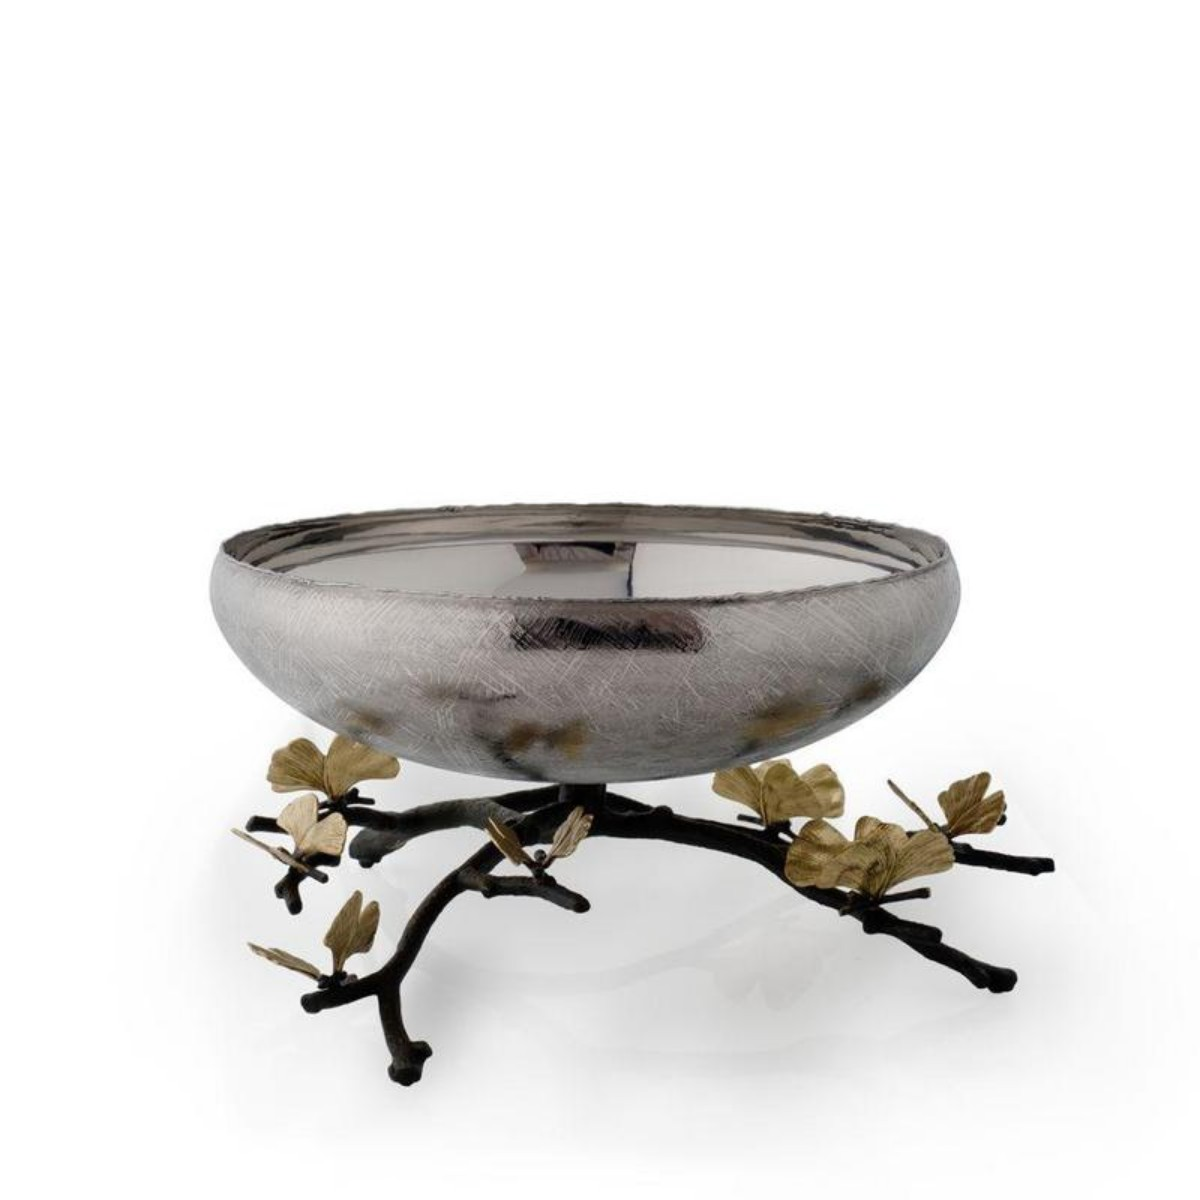 Michael Aram I Butterfly Ginkgo Footed Centerpiece Bowl